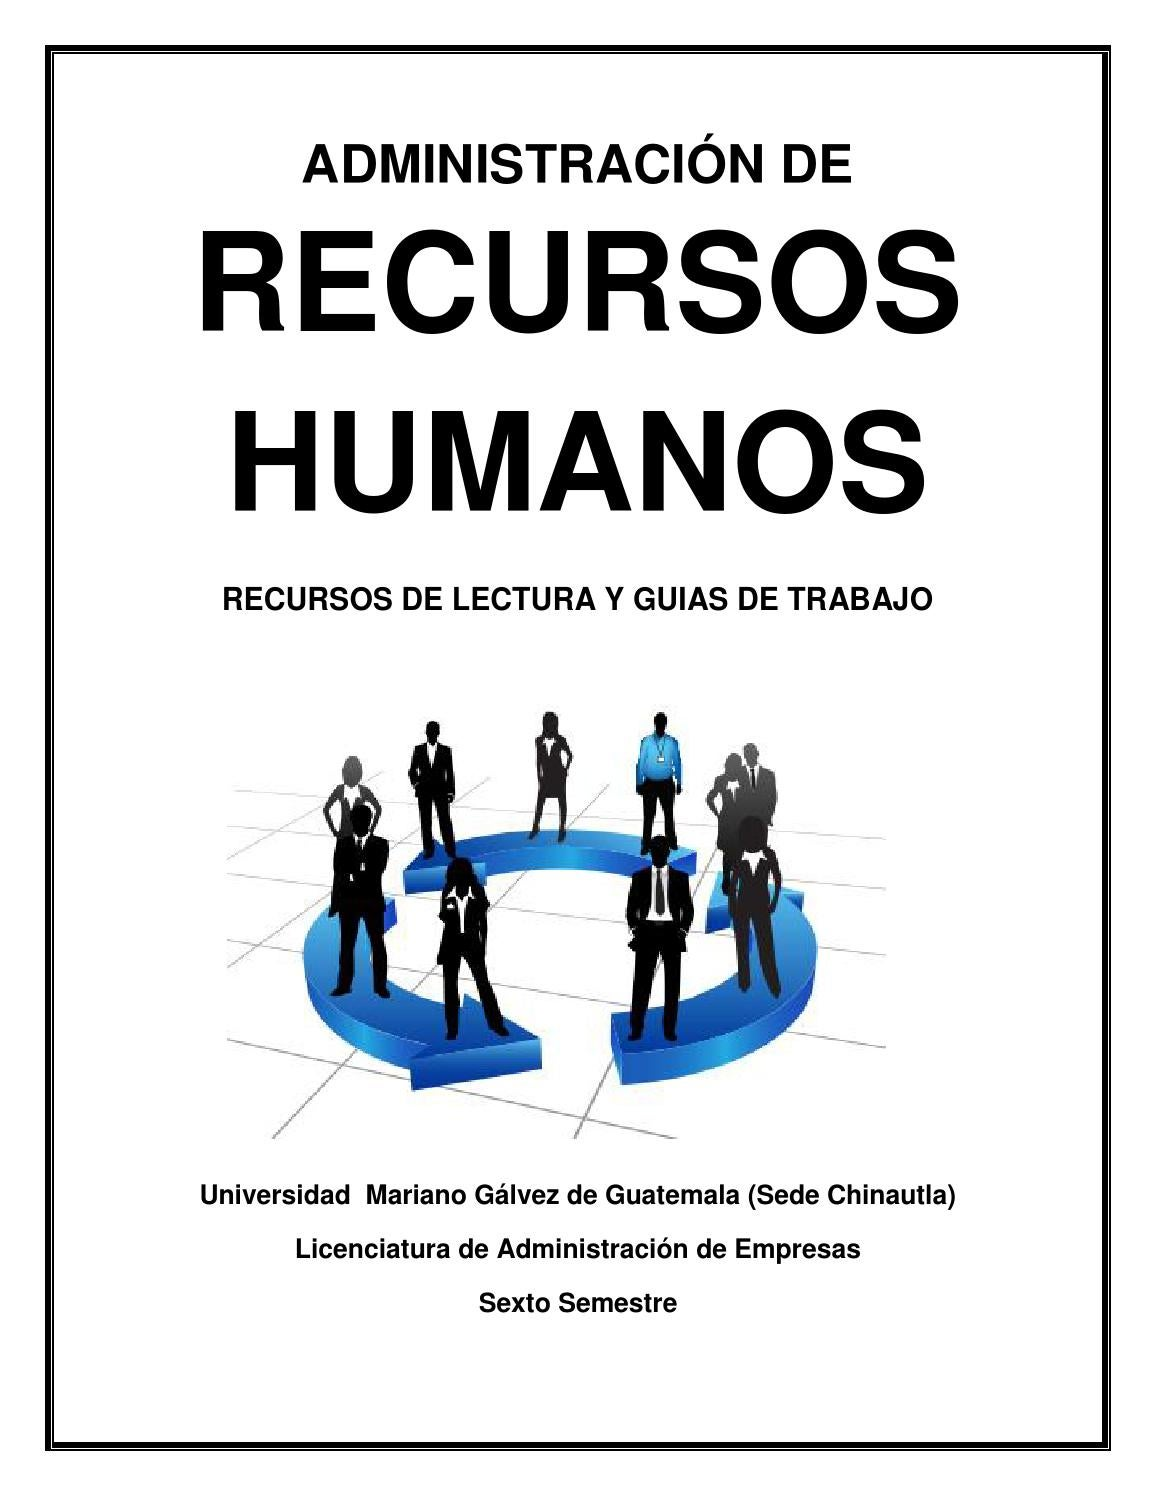 Administracion de recursos humanos by デンイス ロペス - issuu